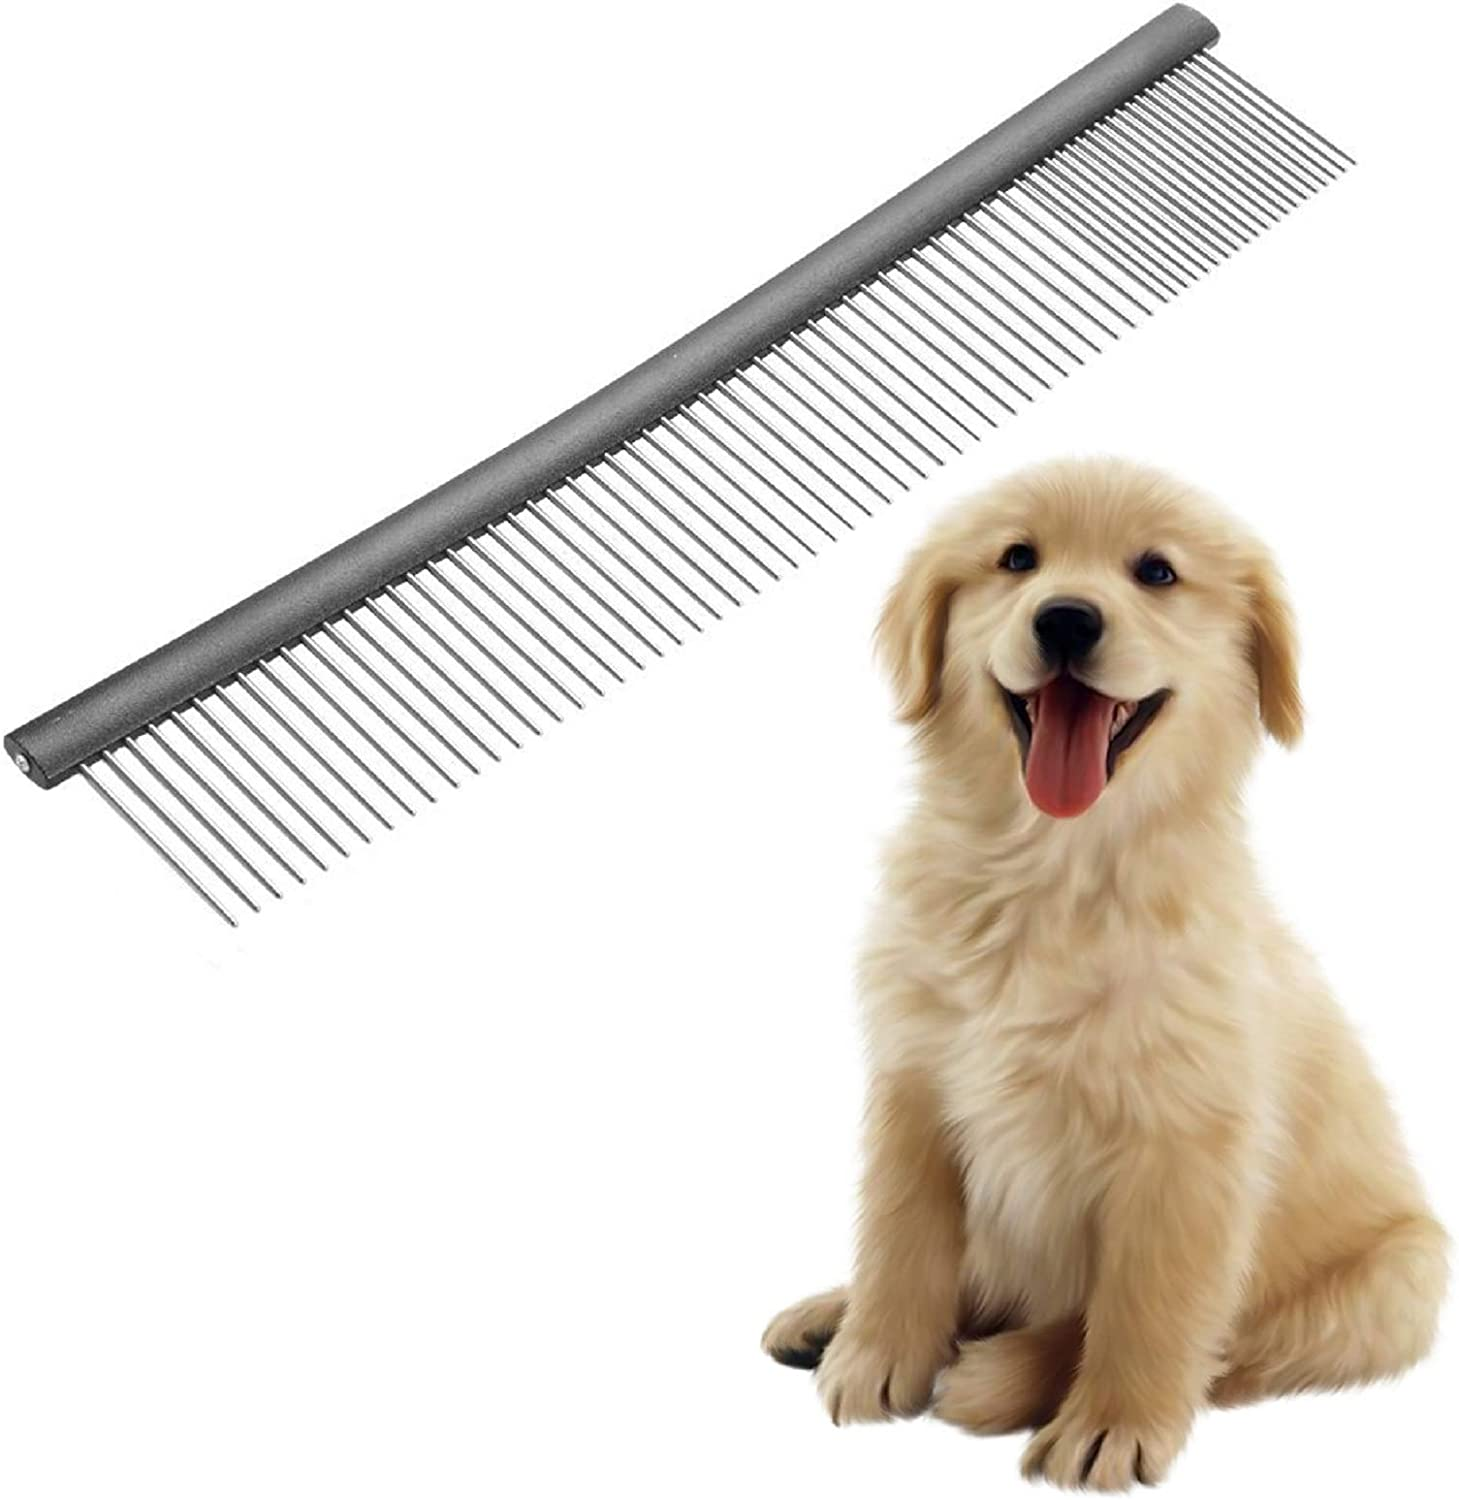 MASTERPETZ Pet Comb, 10 inches Comfortable Grooming Comb with Different-Spaced Rounded Stainless Steel Teeth, Easy Grip and Convenient Grooming for Pets Dog Cat with Medium Coarse Fur